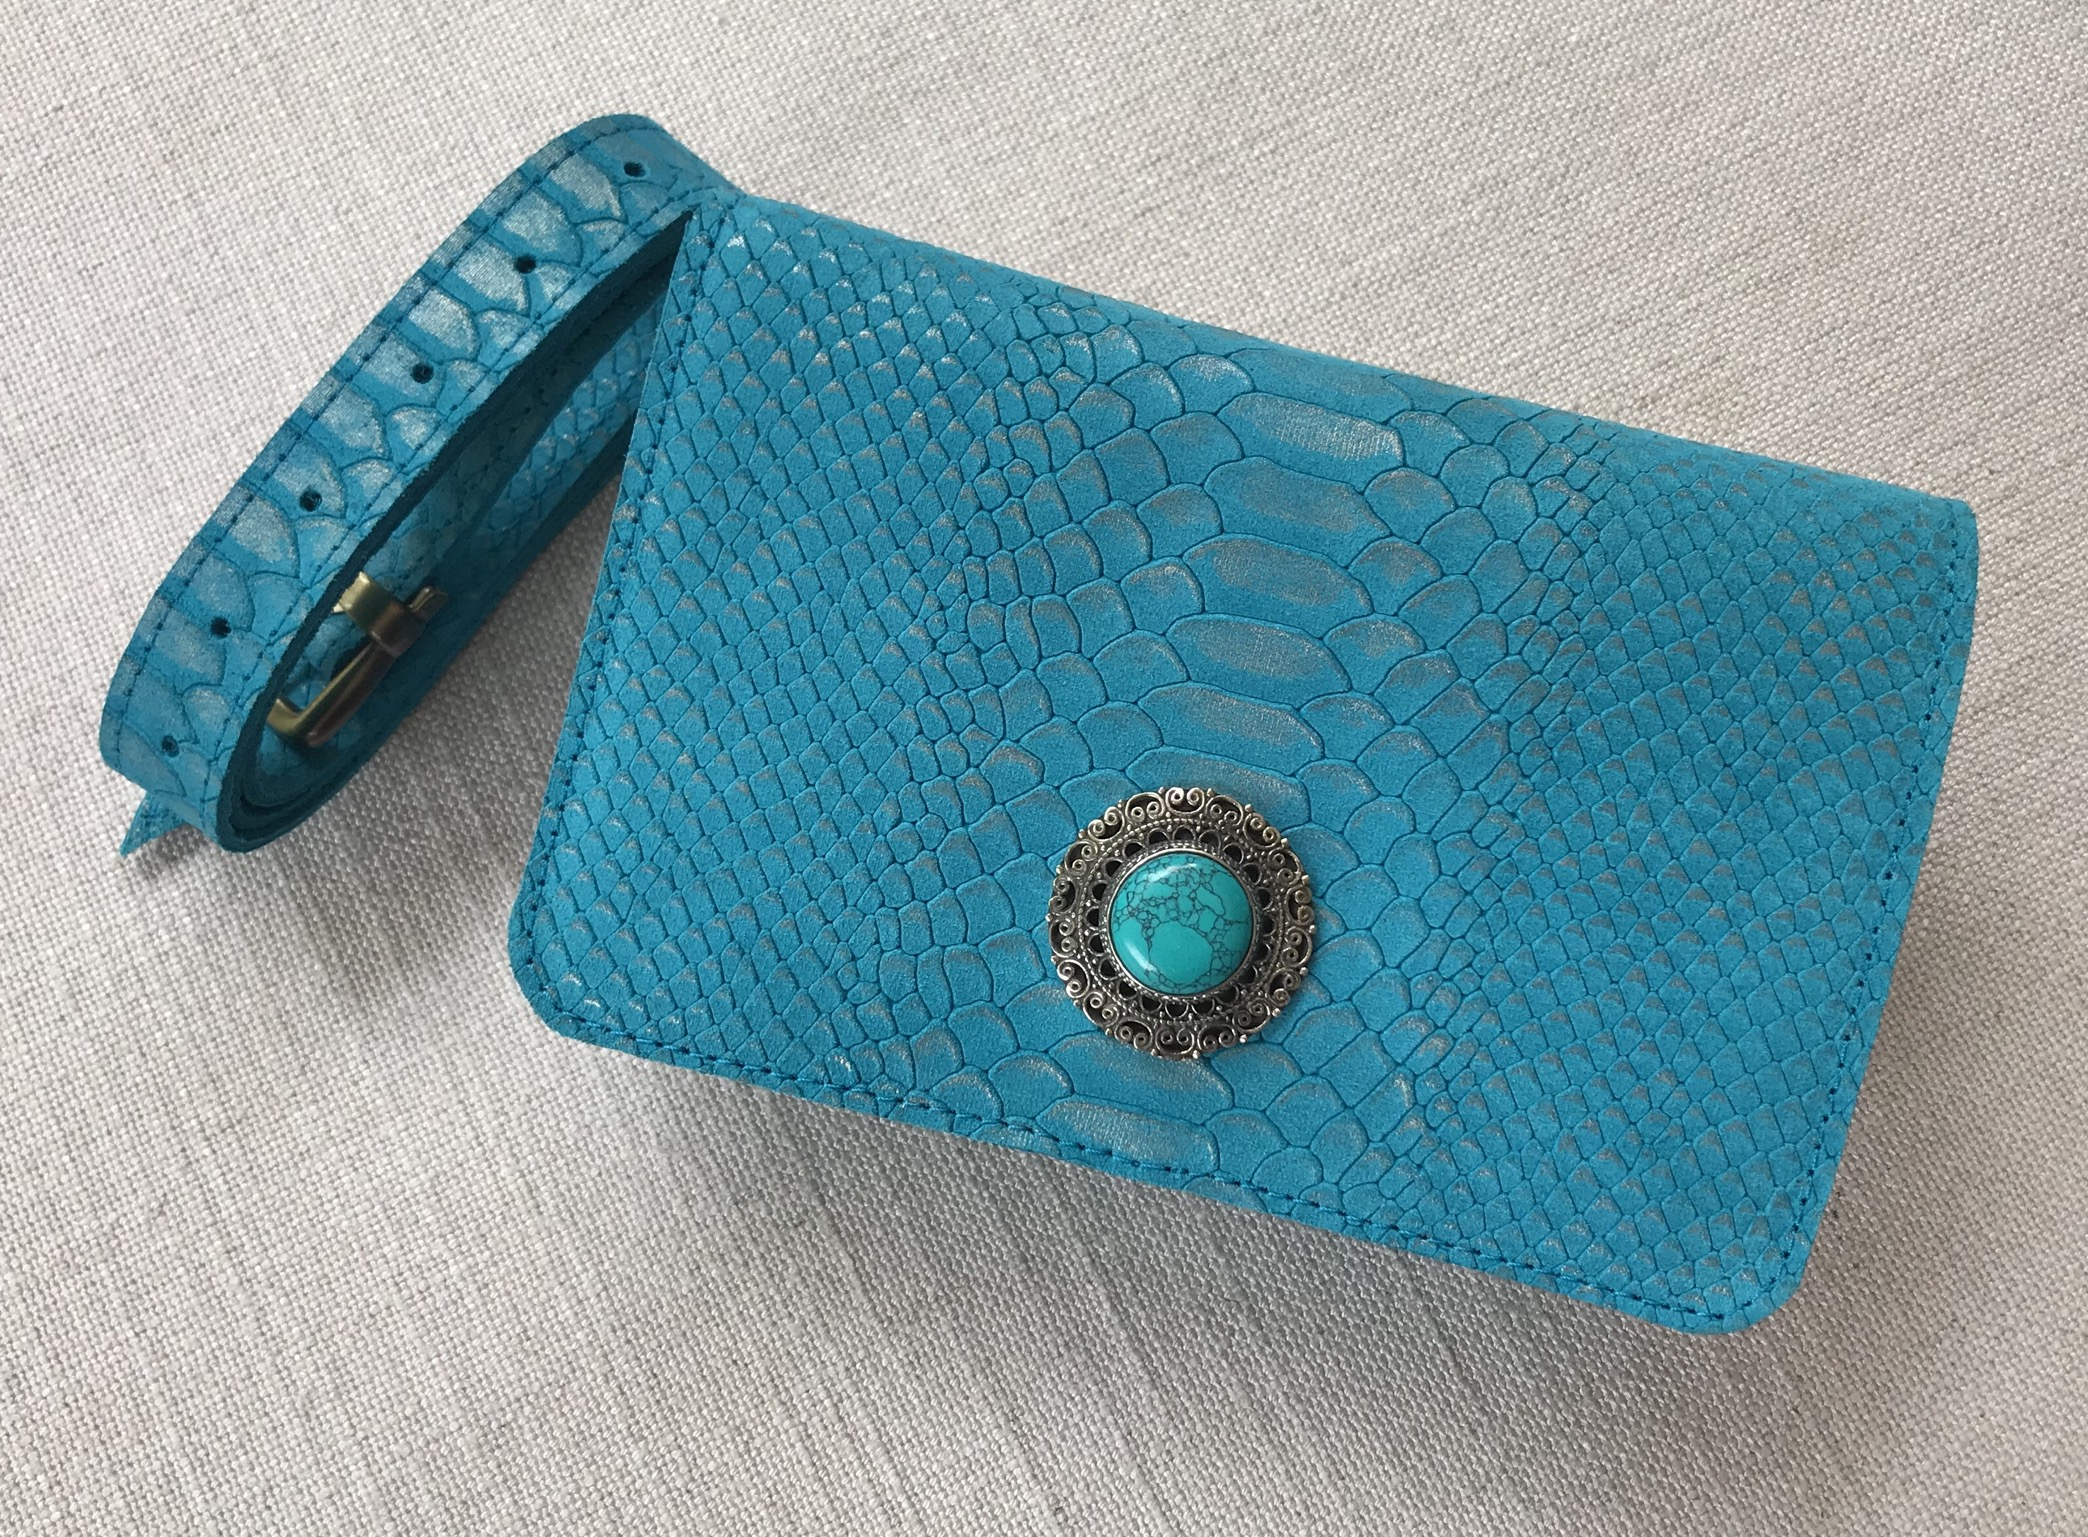 Beltbag Suede leather croco Turquoise with artisanal jewelry